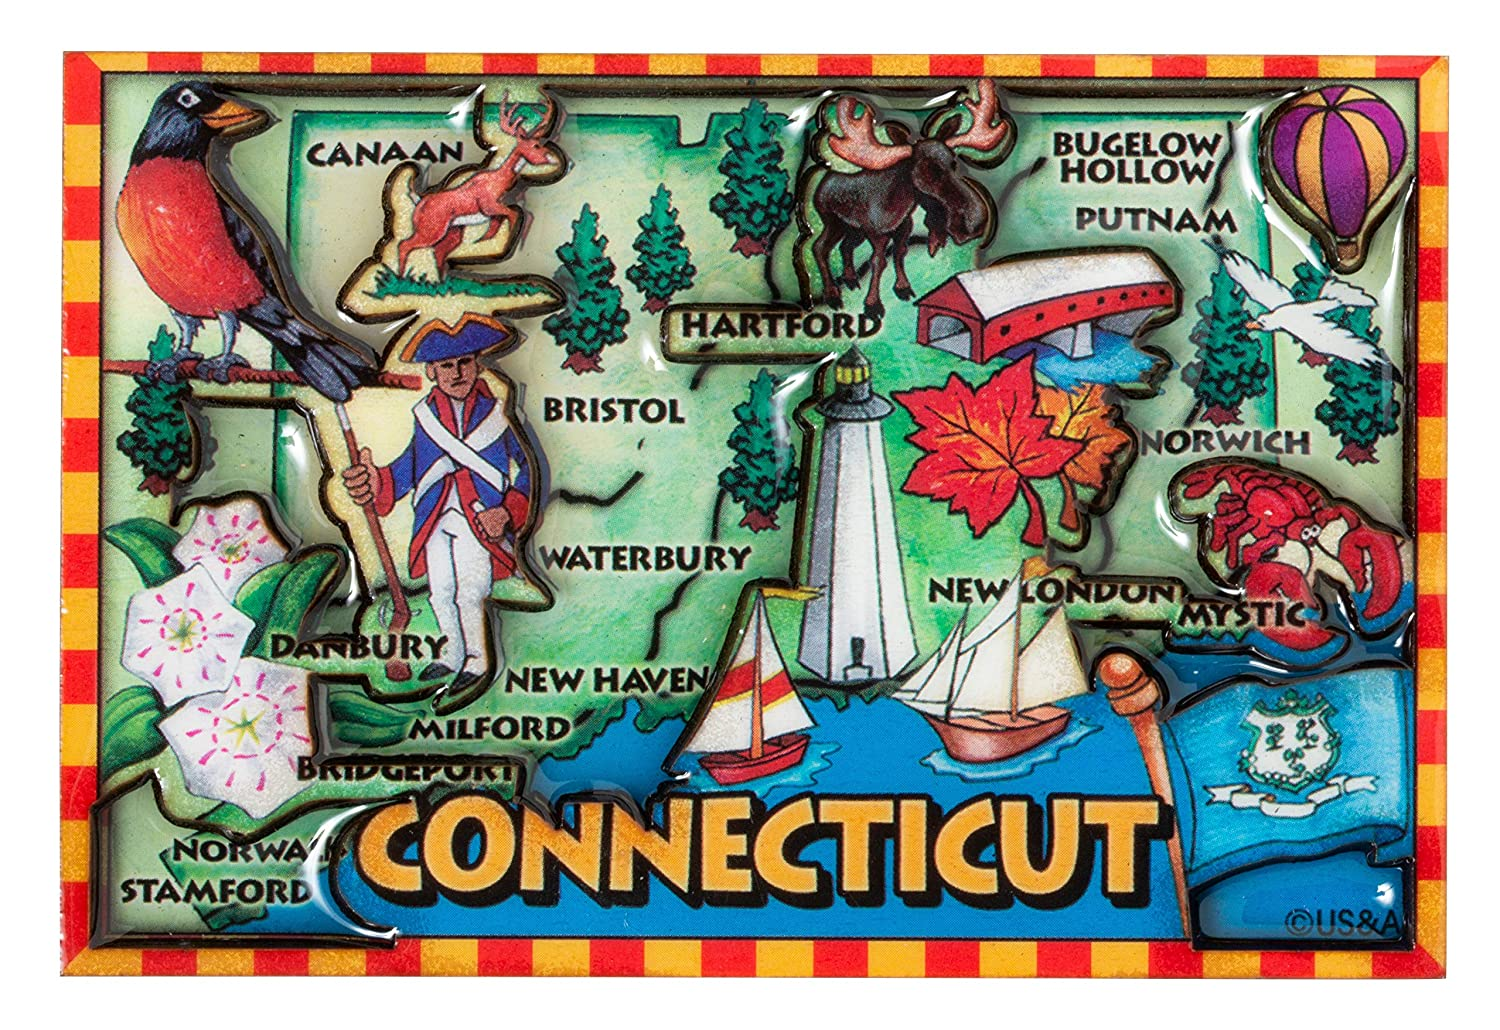 Connecticut State Iconic Images Map Raised Souvenir Refrigerator Magnet